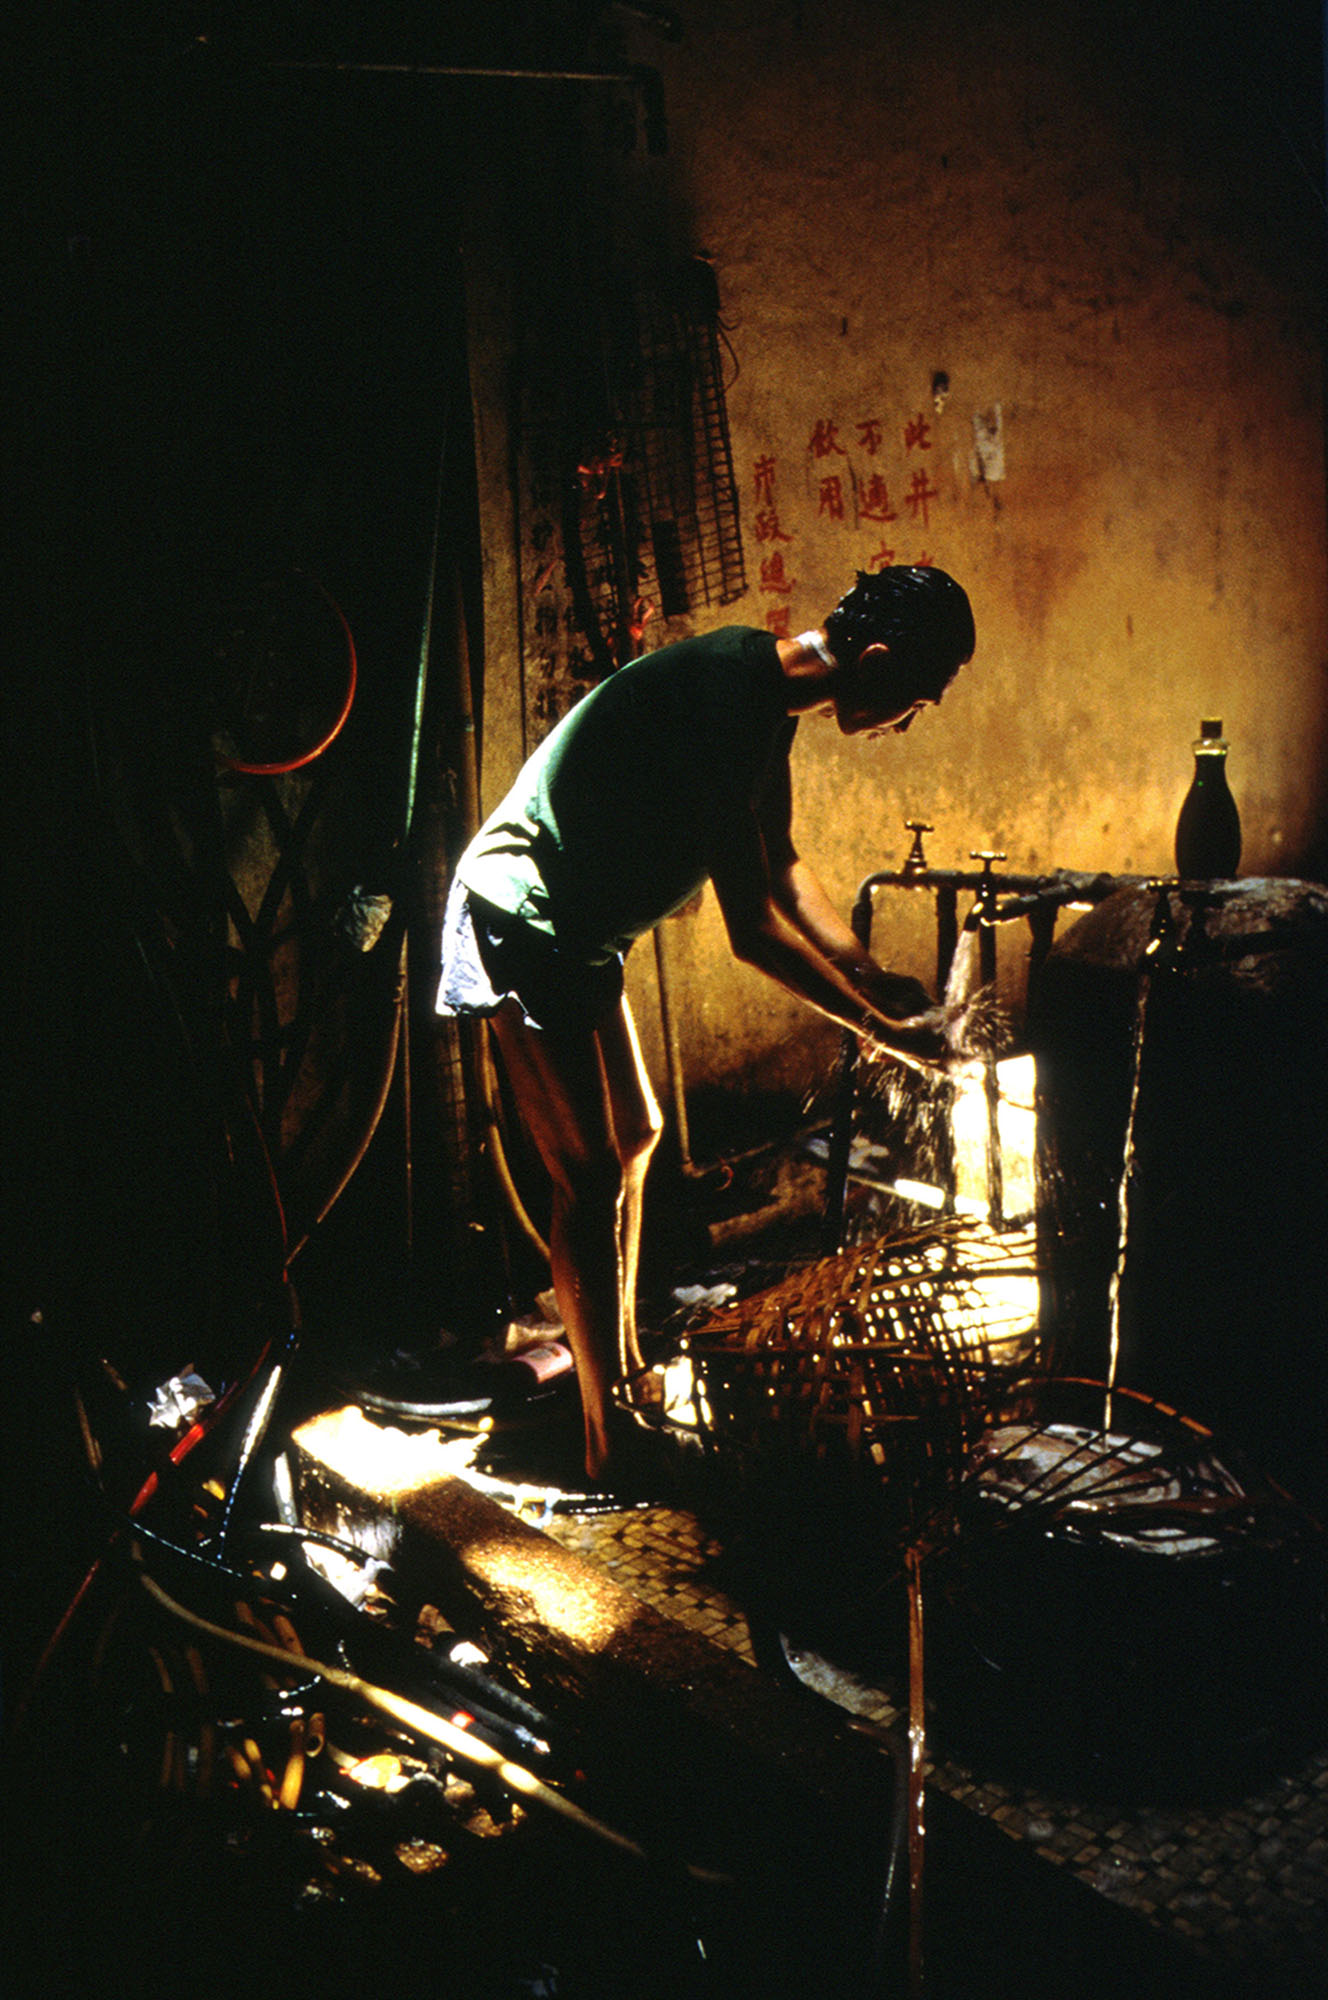 Washing at public standpipe, 1989